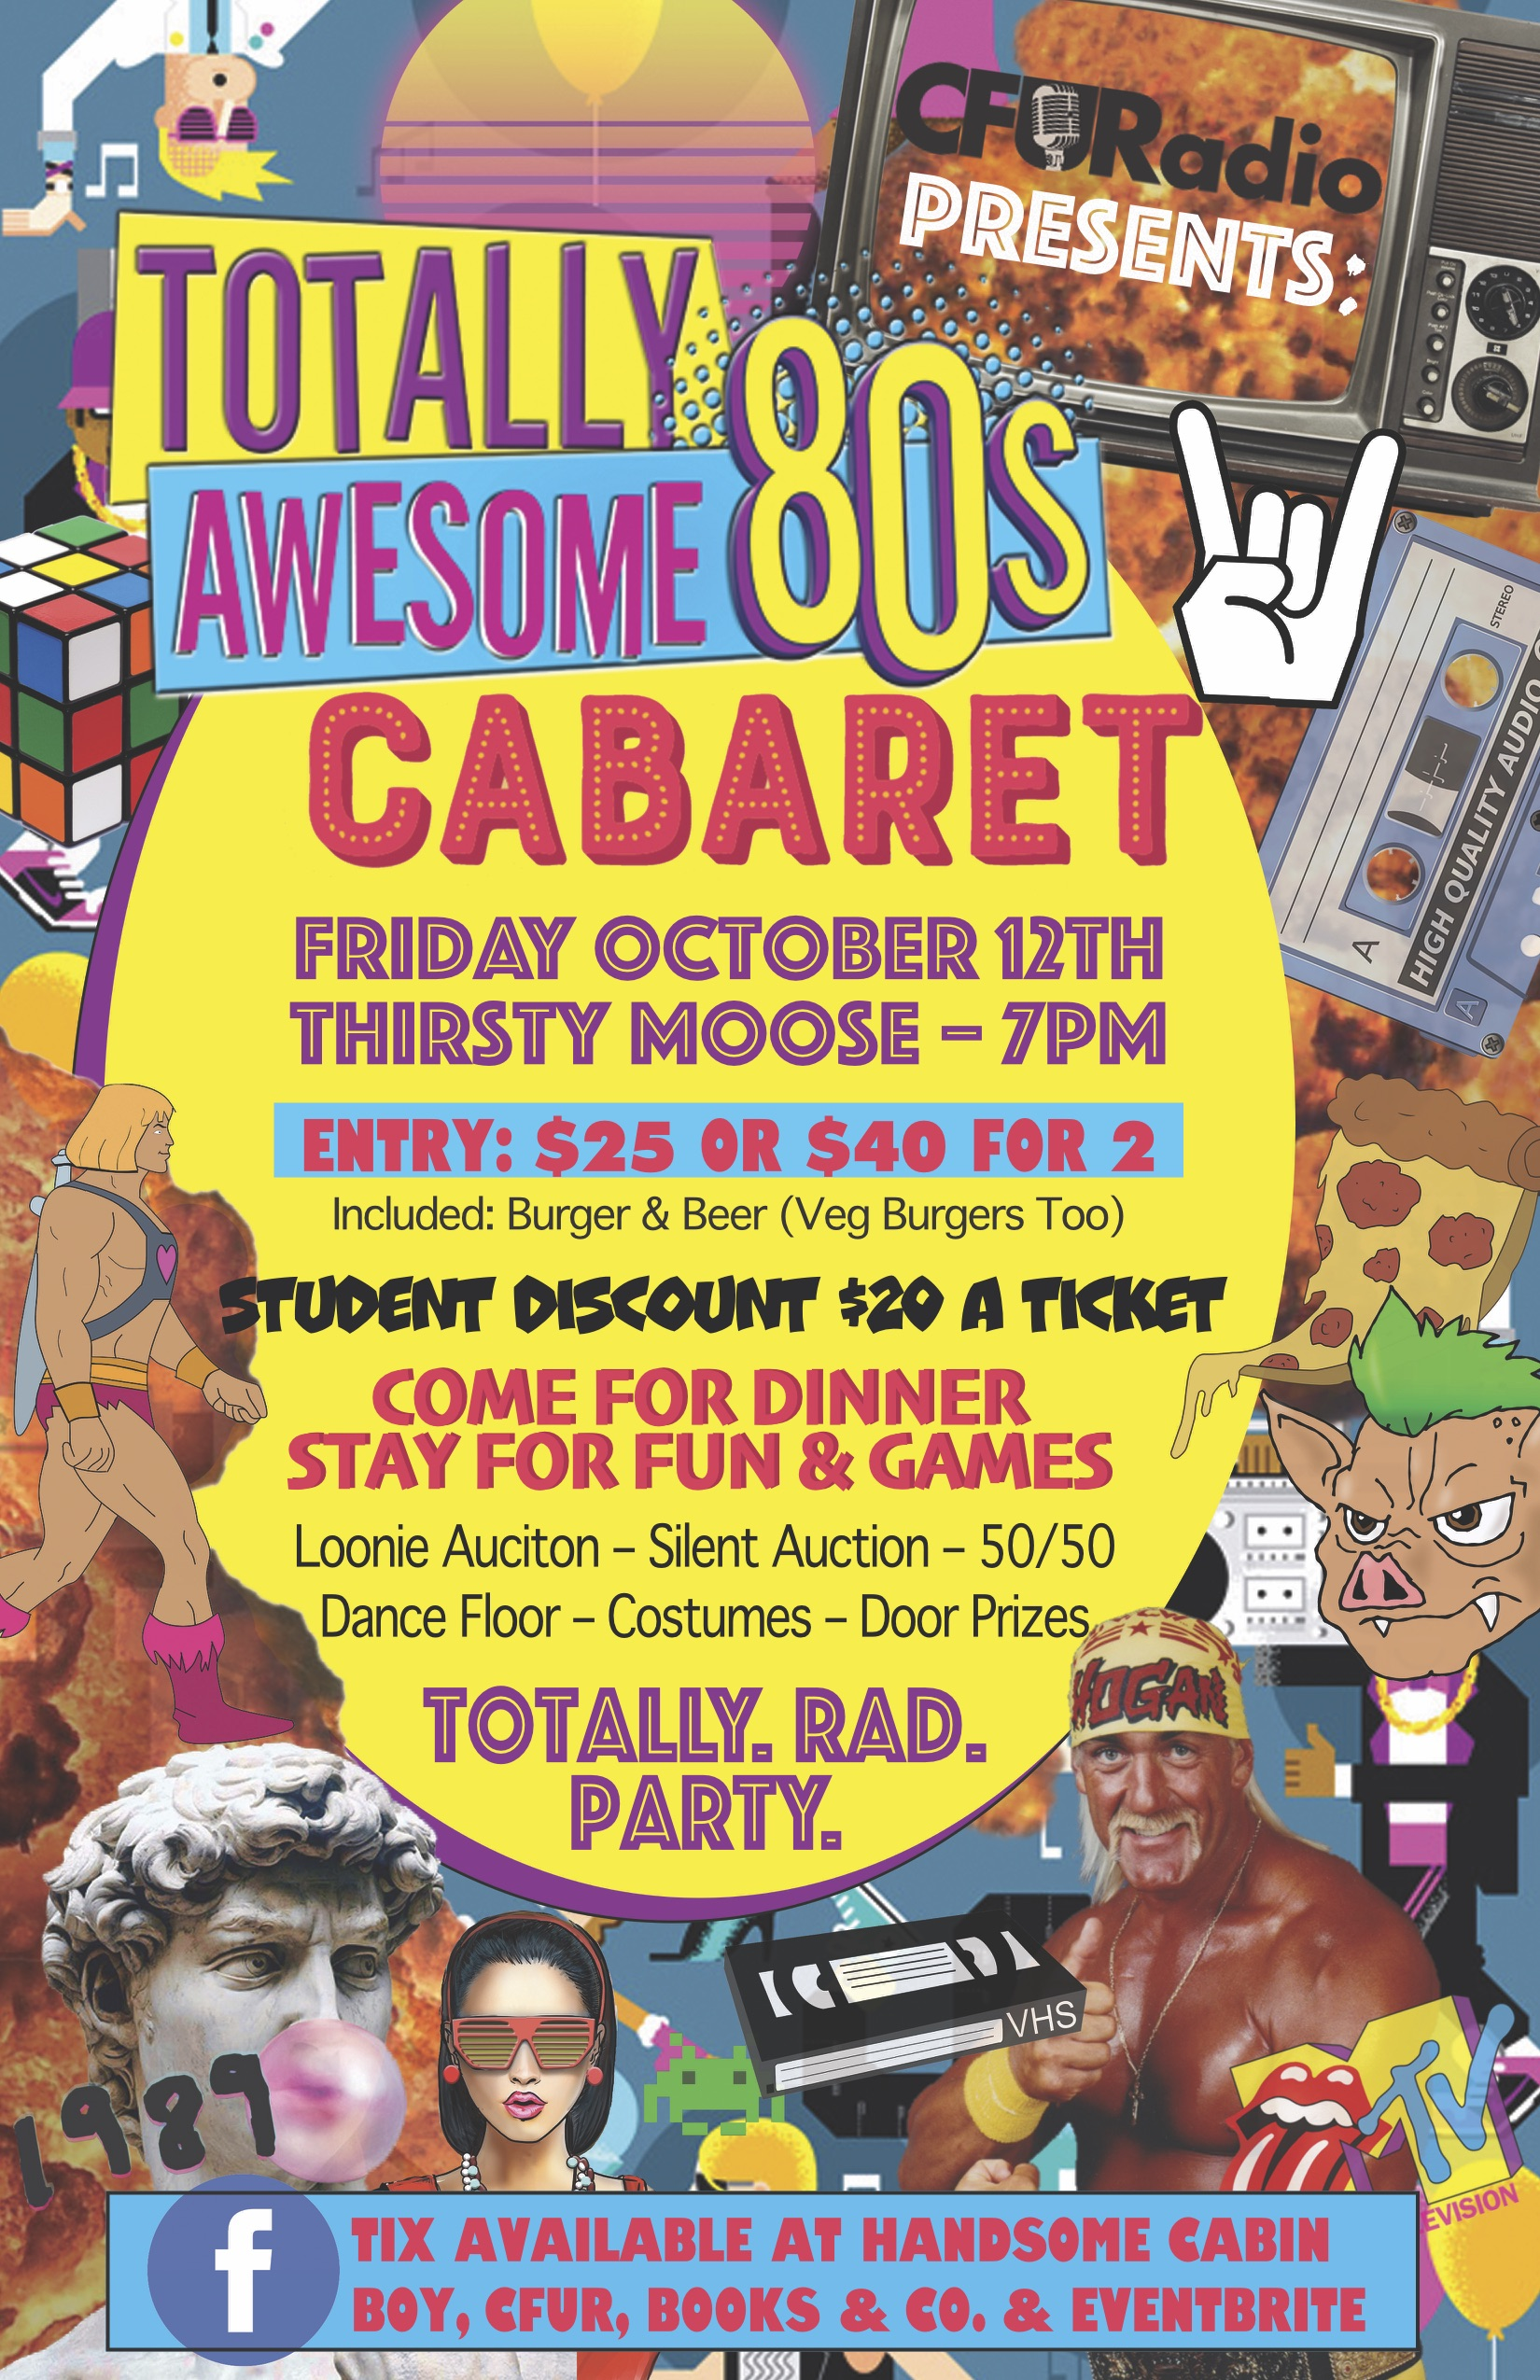 Cfur 80s Poster Friday Oct 12.jpg